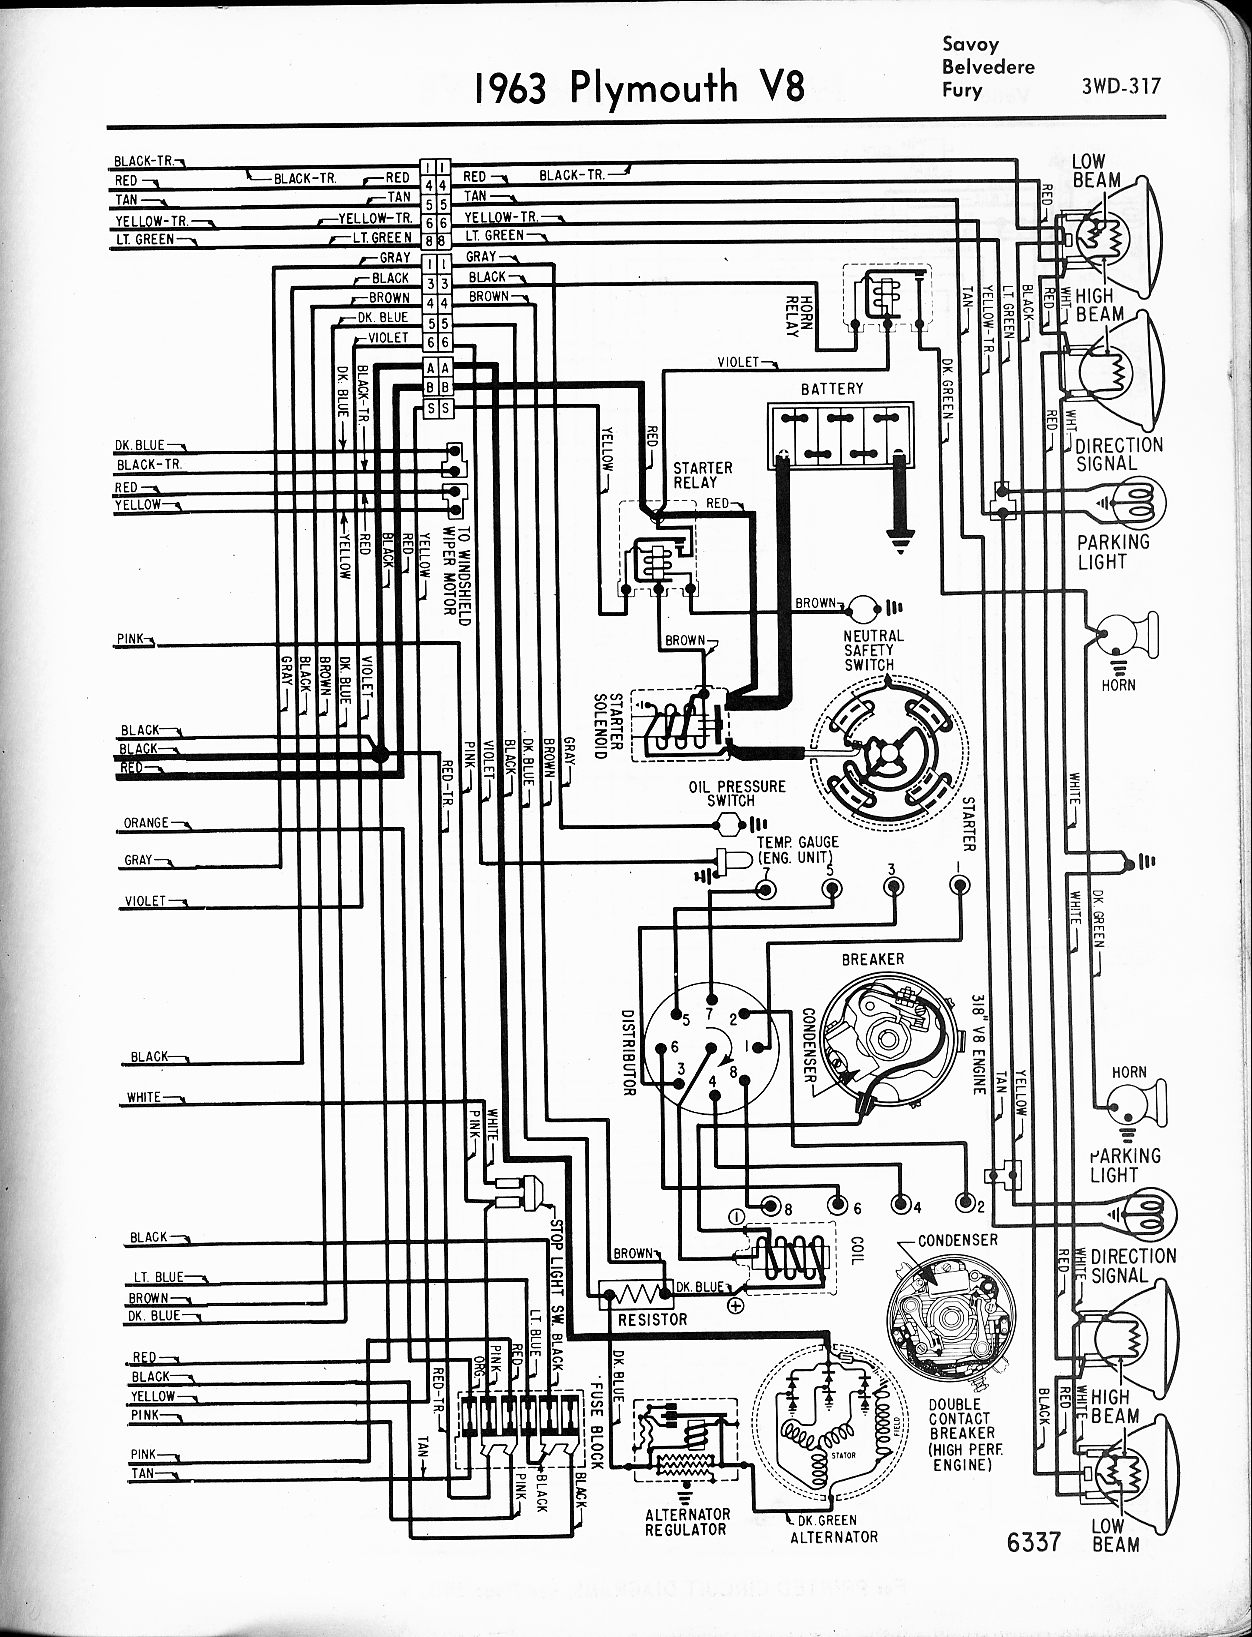 1964 Chrysler Wiring Schematic Library 2003 Crysler Town And Country Diagrams 63 Plymouth Diagram Schematics Rh Mychampagnedaze Com